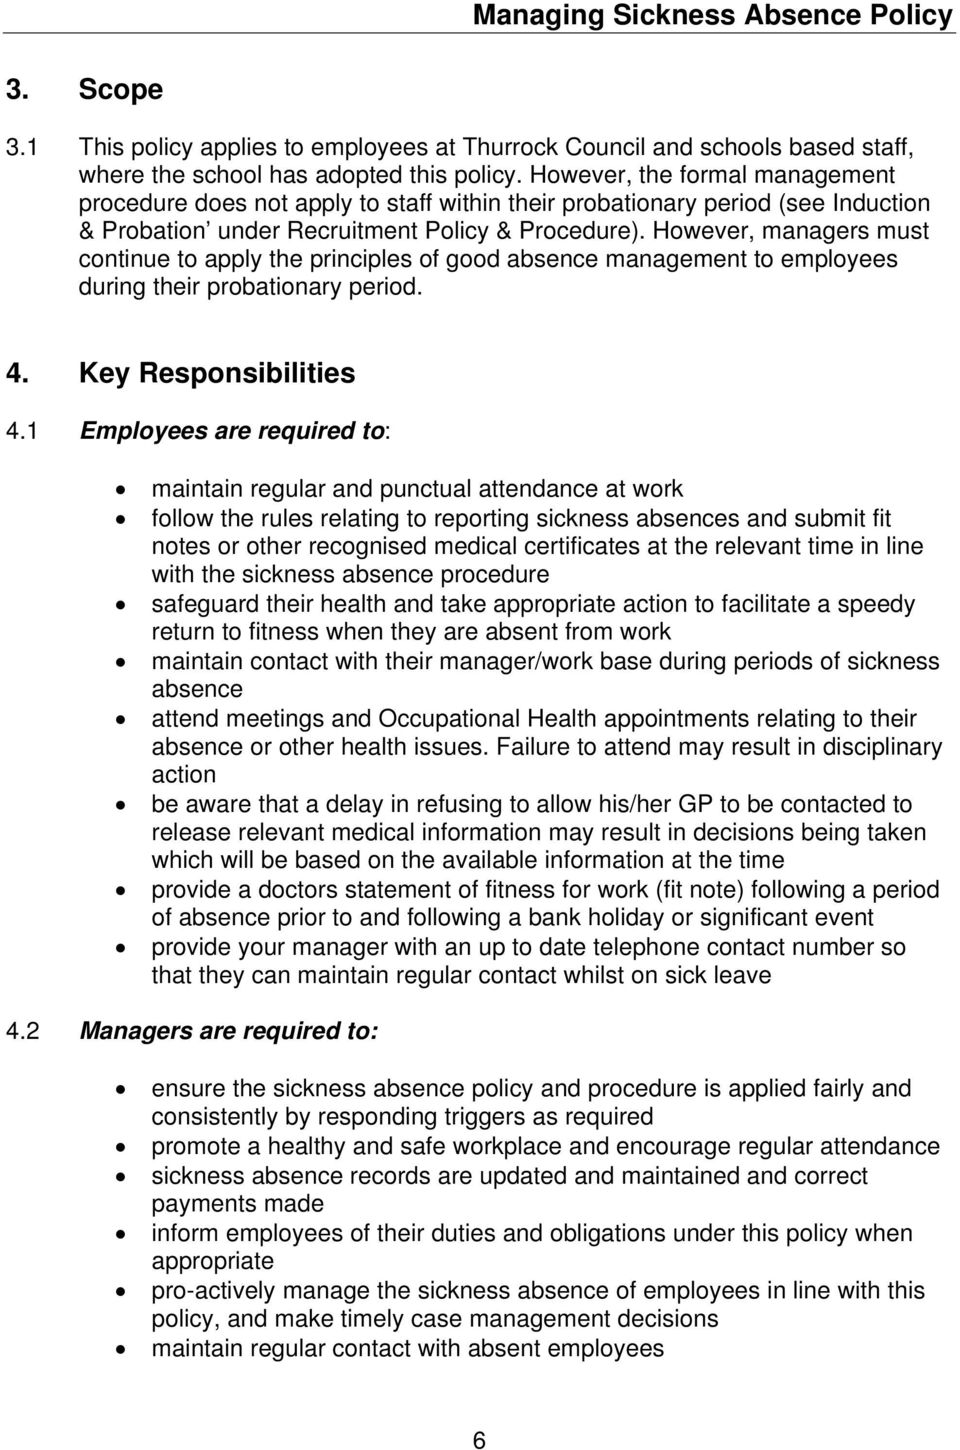 However, managers must continue to apply the principles of good absence management to employees during their probationary period. 4. Key Responsibilities 4.